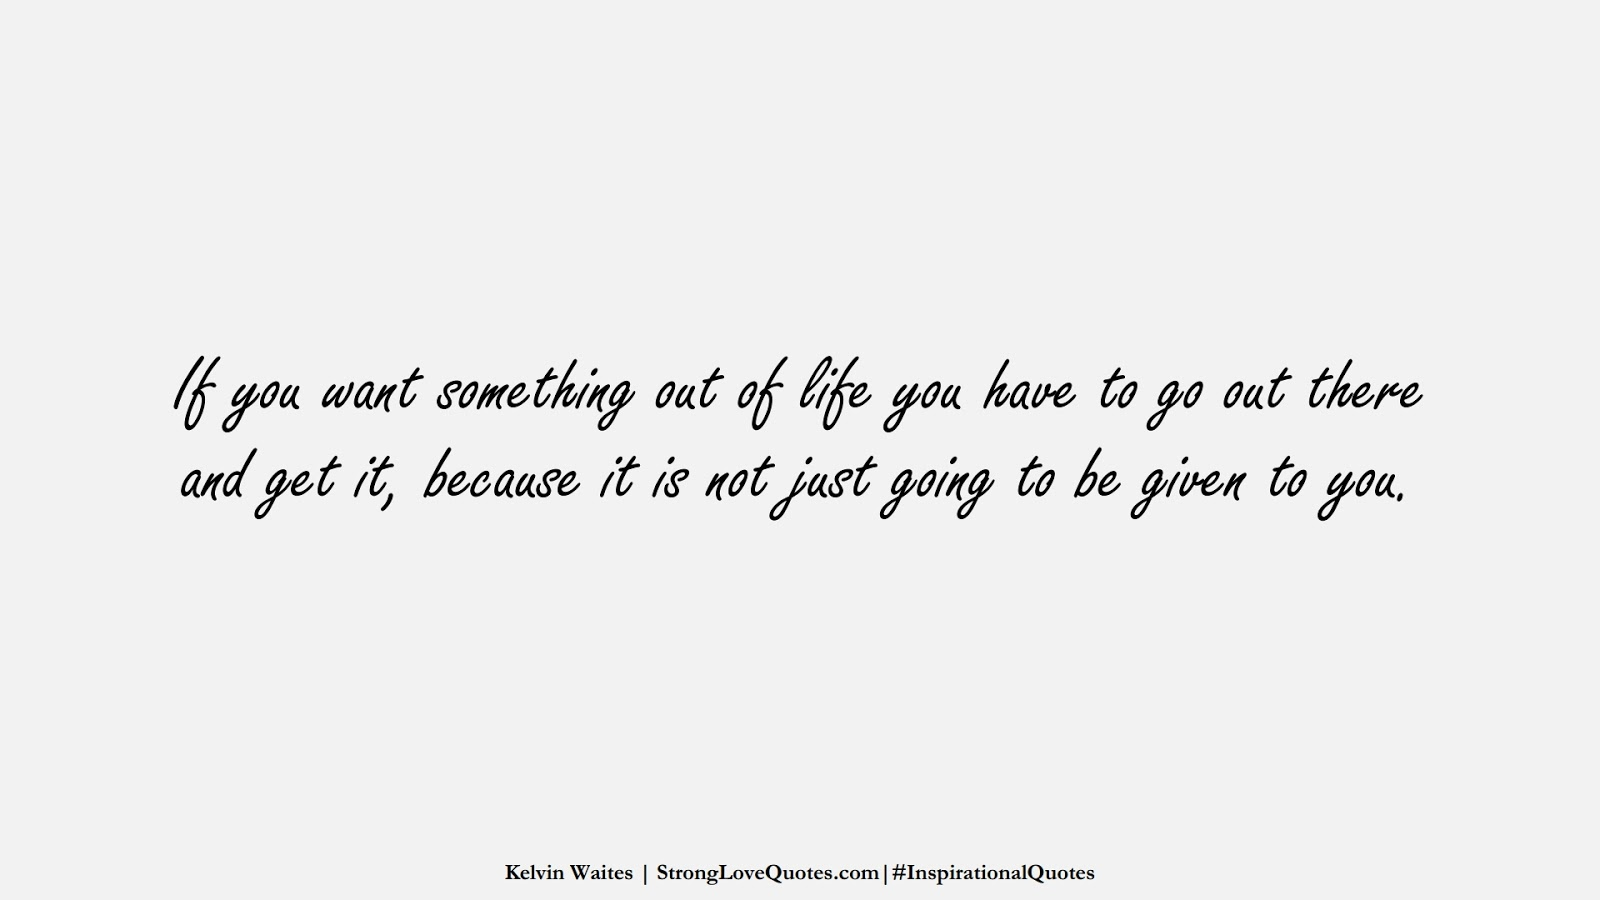 If you want something out of life you have to go out there and get it, because it is not just going to be given to you. (Kelvin Waites);  #InspirationalQuotes